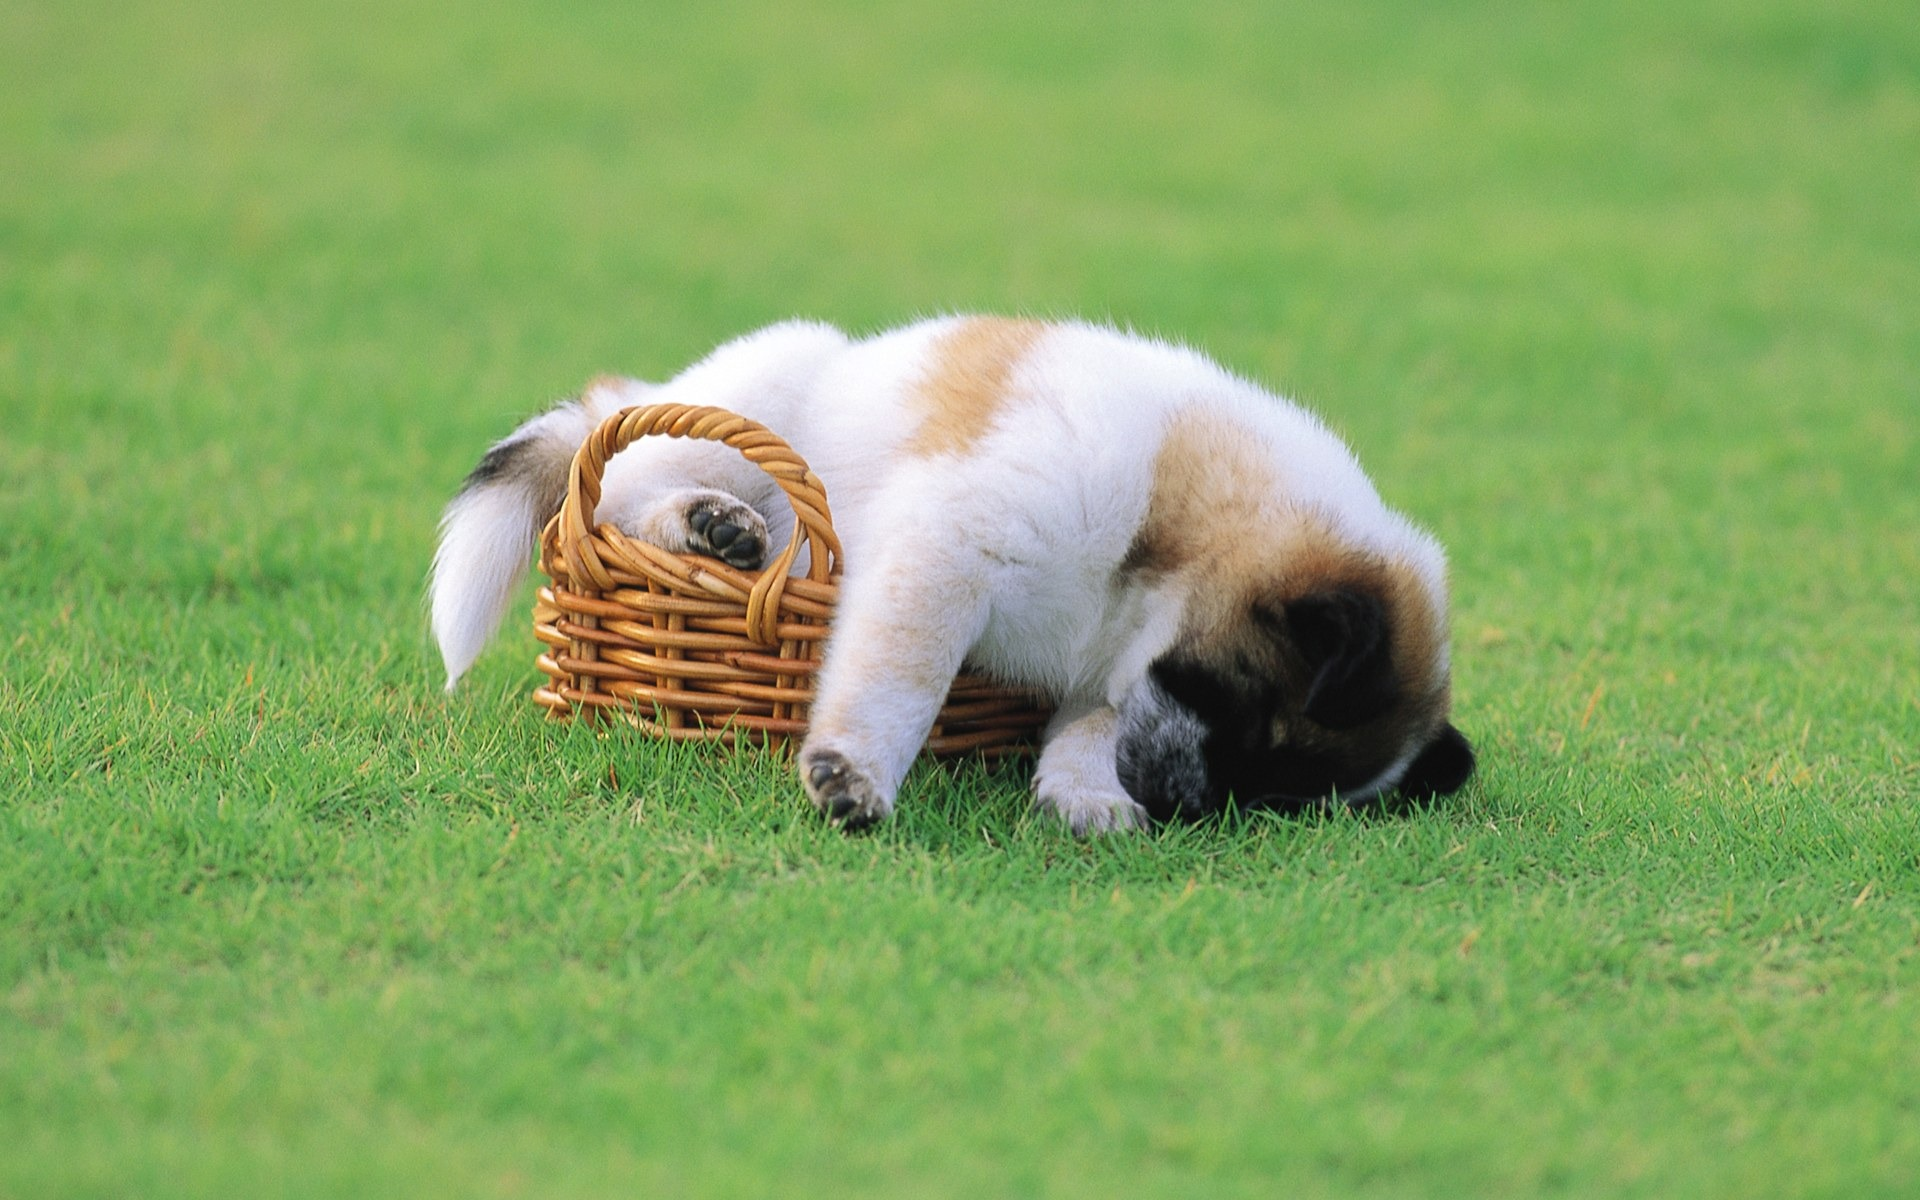 cute puppy sleeping on grass wallpaper-lovely puppies preview